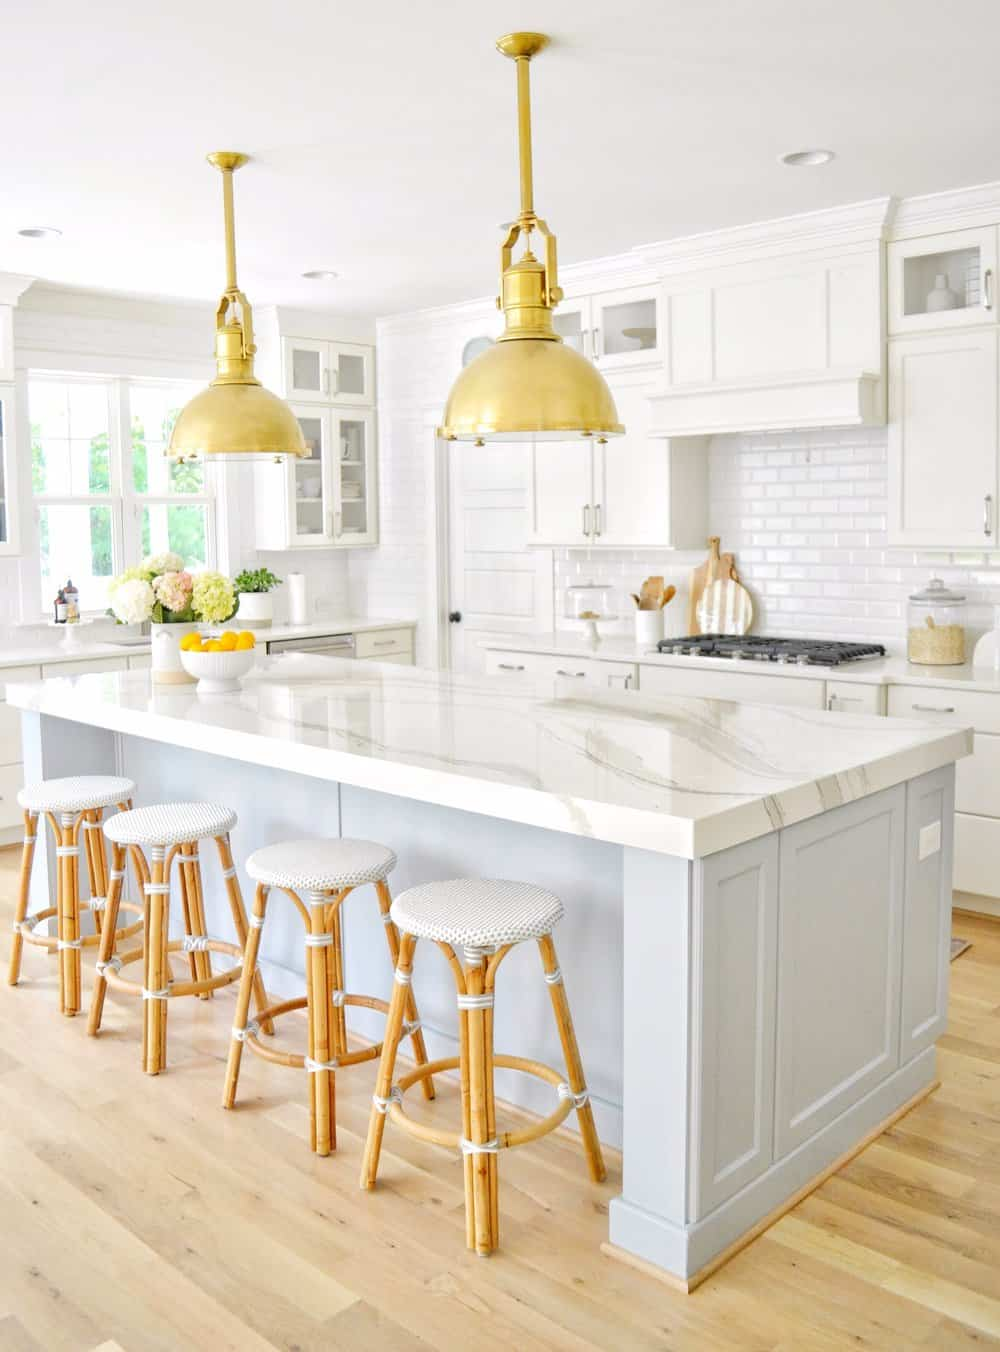 Light Blue and Gray Kitchen Island